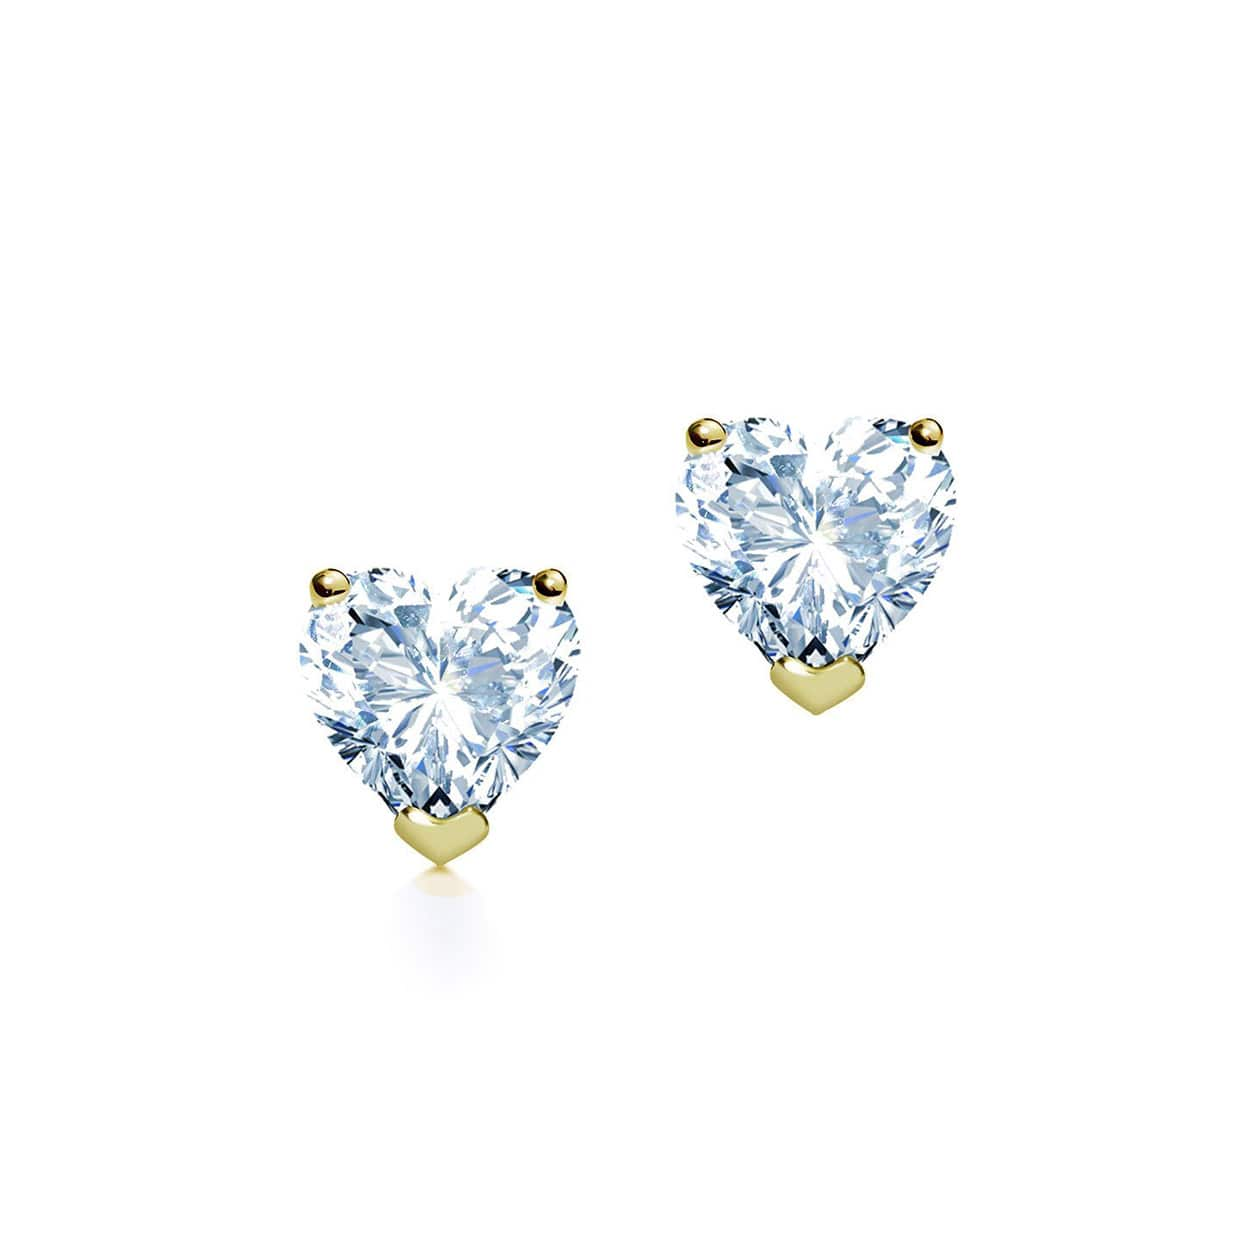 Oxford Classic Gold Three-Claw Heart Earrings - Abelstedt